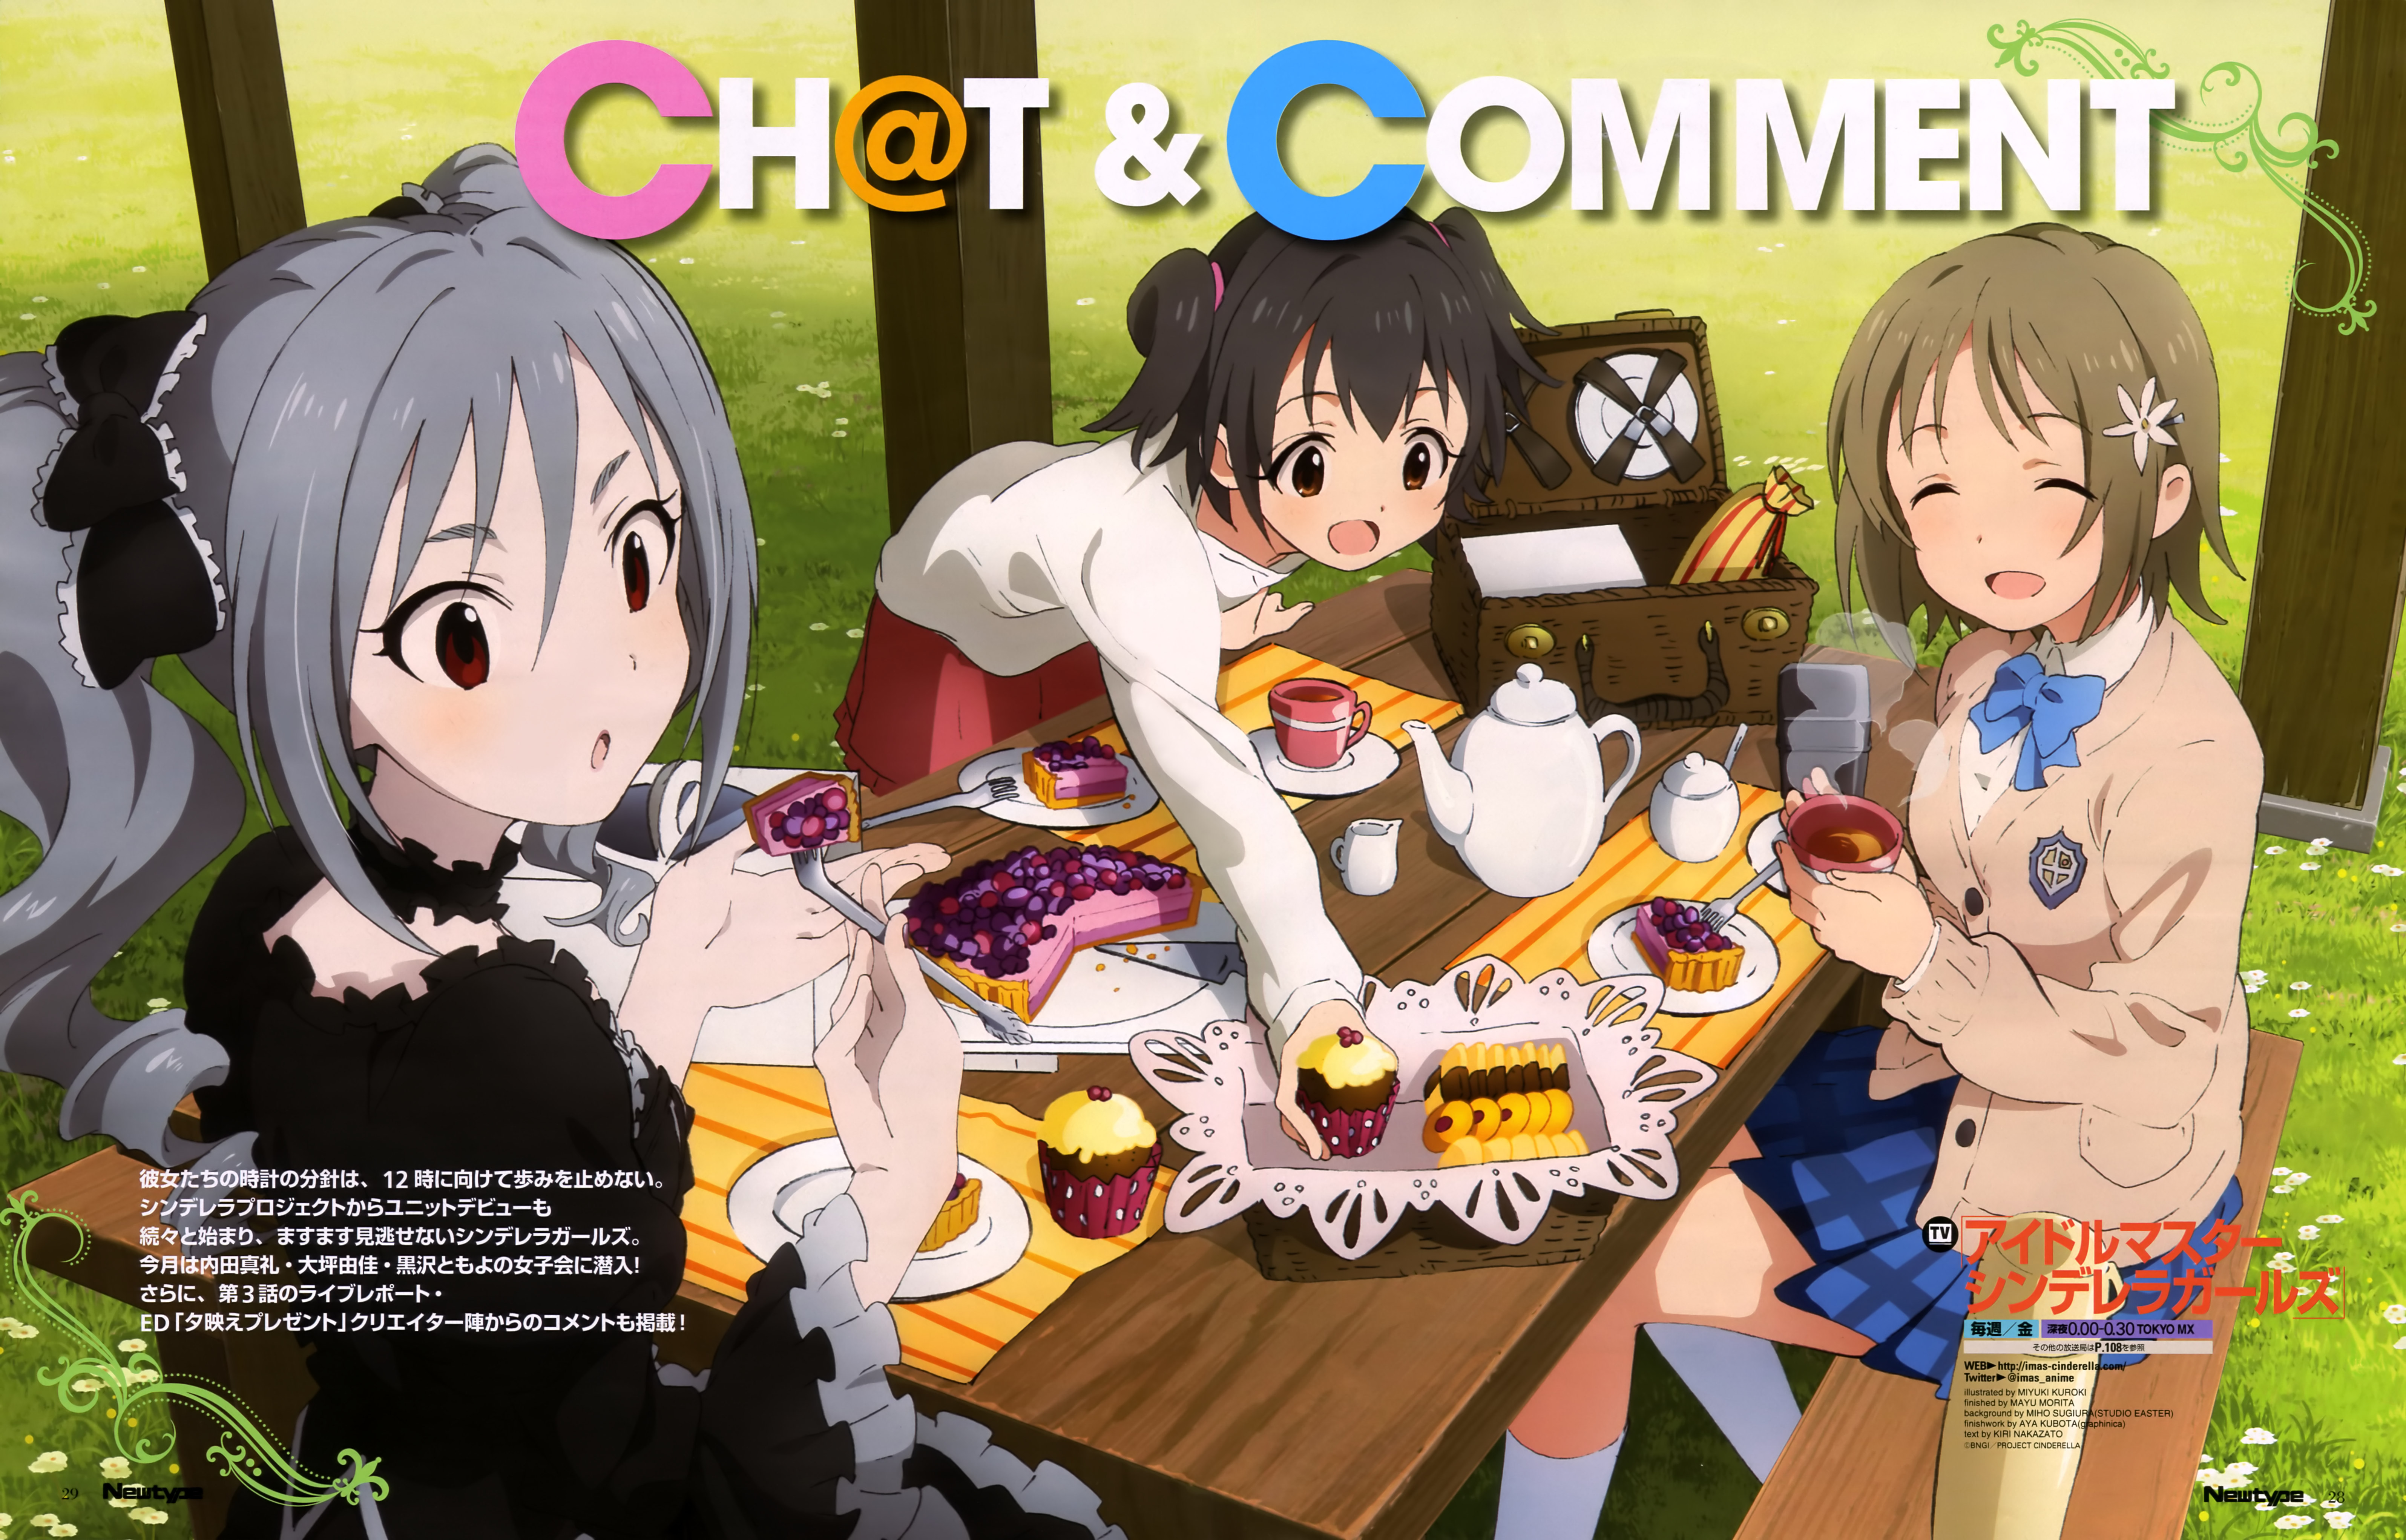 Top 10 Anime Series from NewType's May 2015 Issue The iDOLM@STER Cinderella Girls